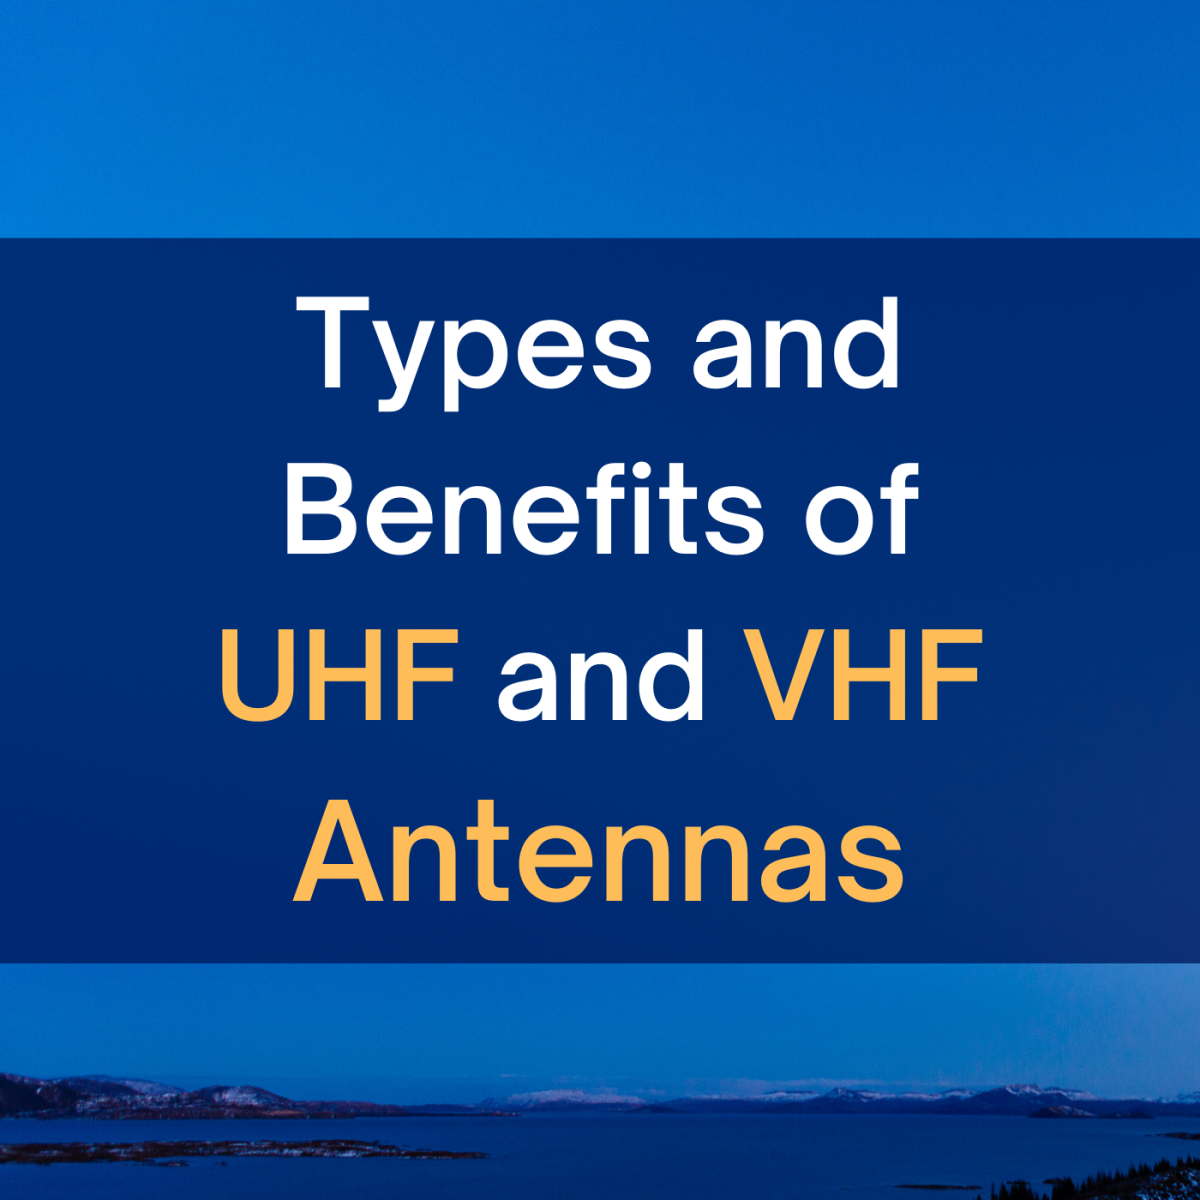 Learn more about UHF and VHF antennas with this guide.